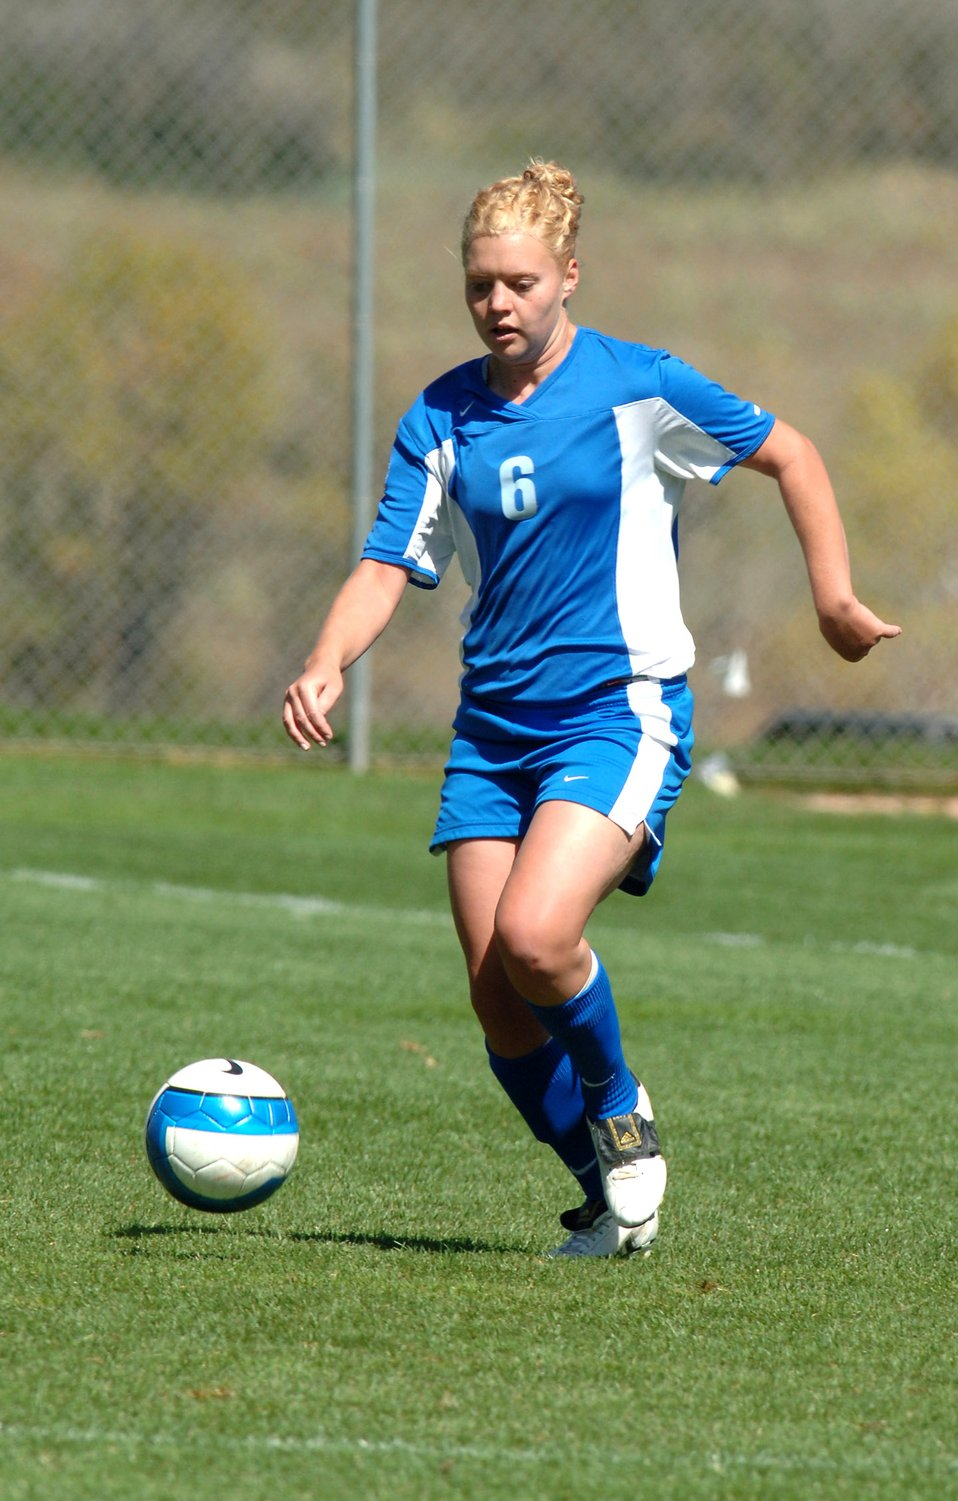 Cadet named to all-conference women's soccer team